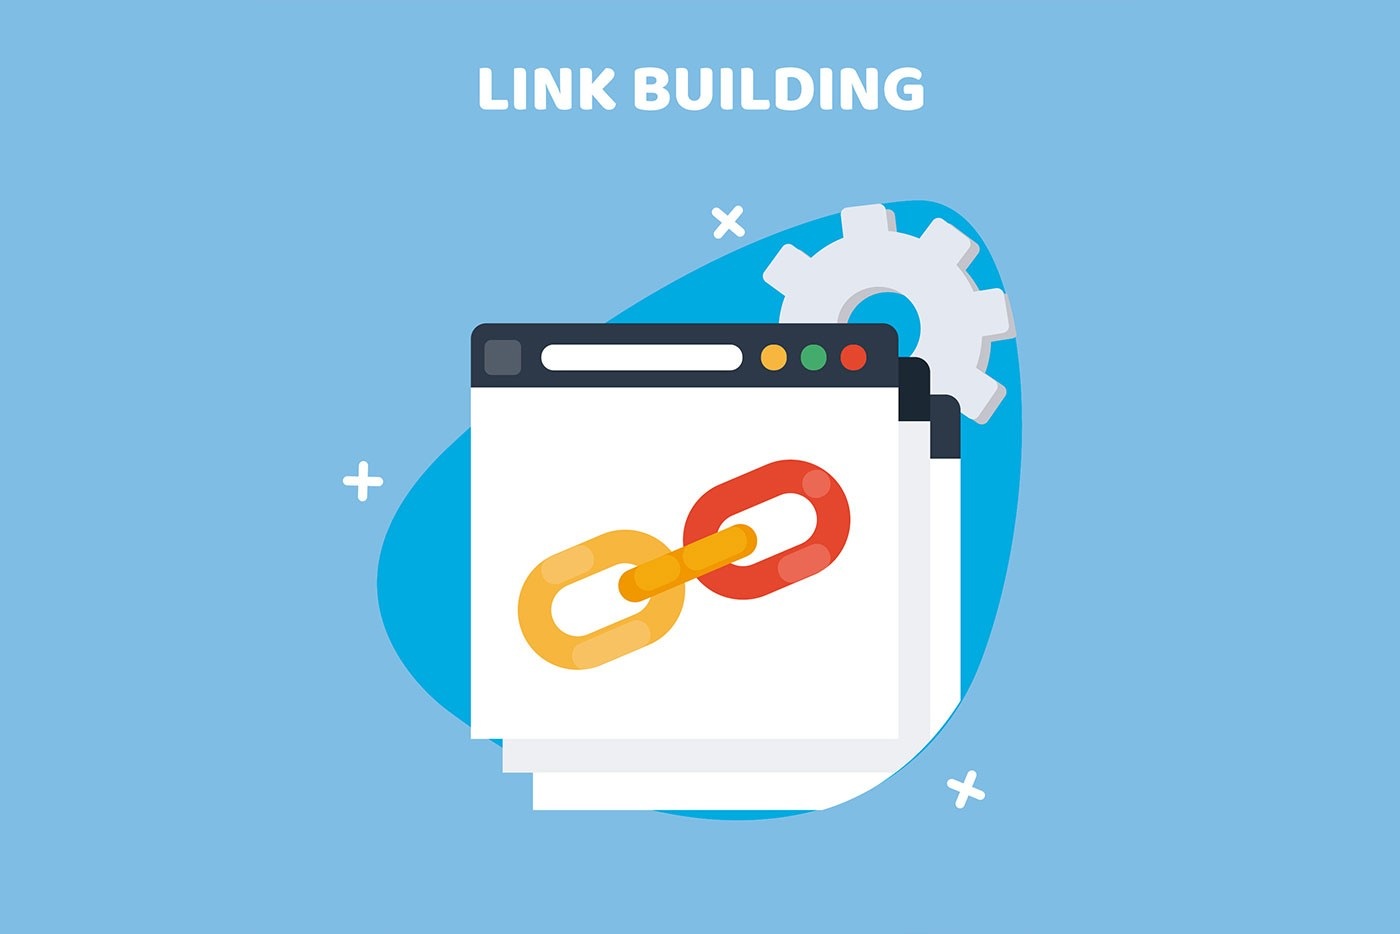 Profile Link Building Sites And Where To Find Them